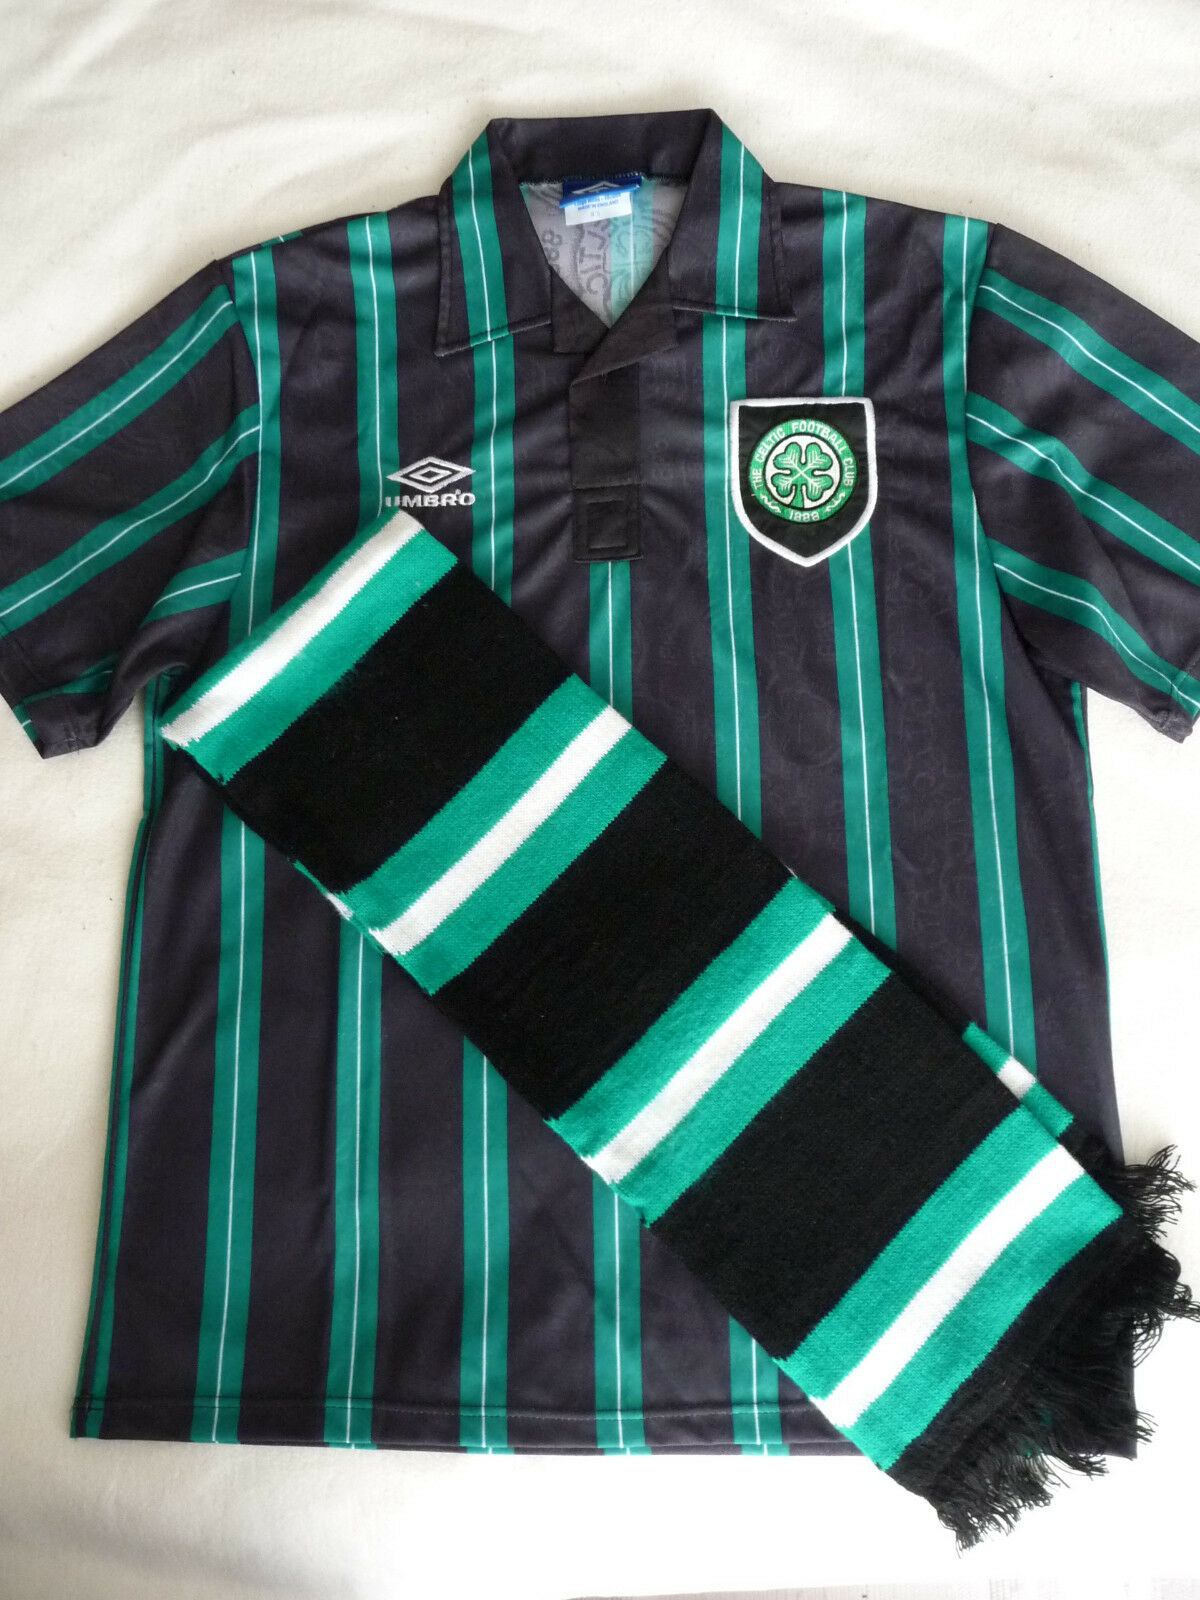 Celtic FC  Umbro Trikot / Shirt Shirt. Größe L  Away Shirt / 1992 / 1993 + Schal 498667